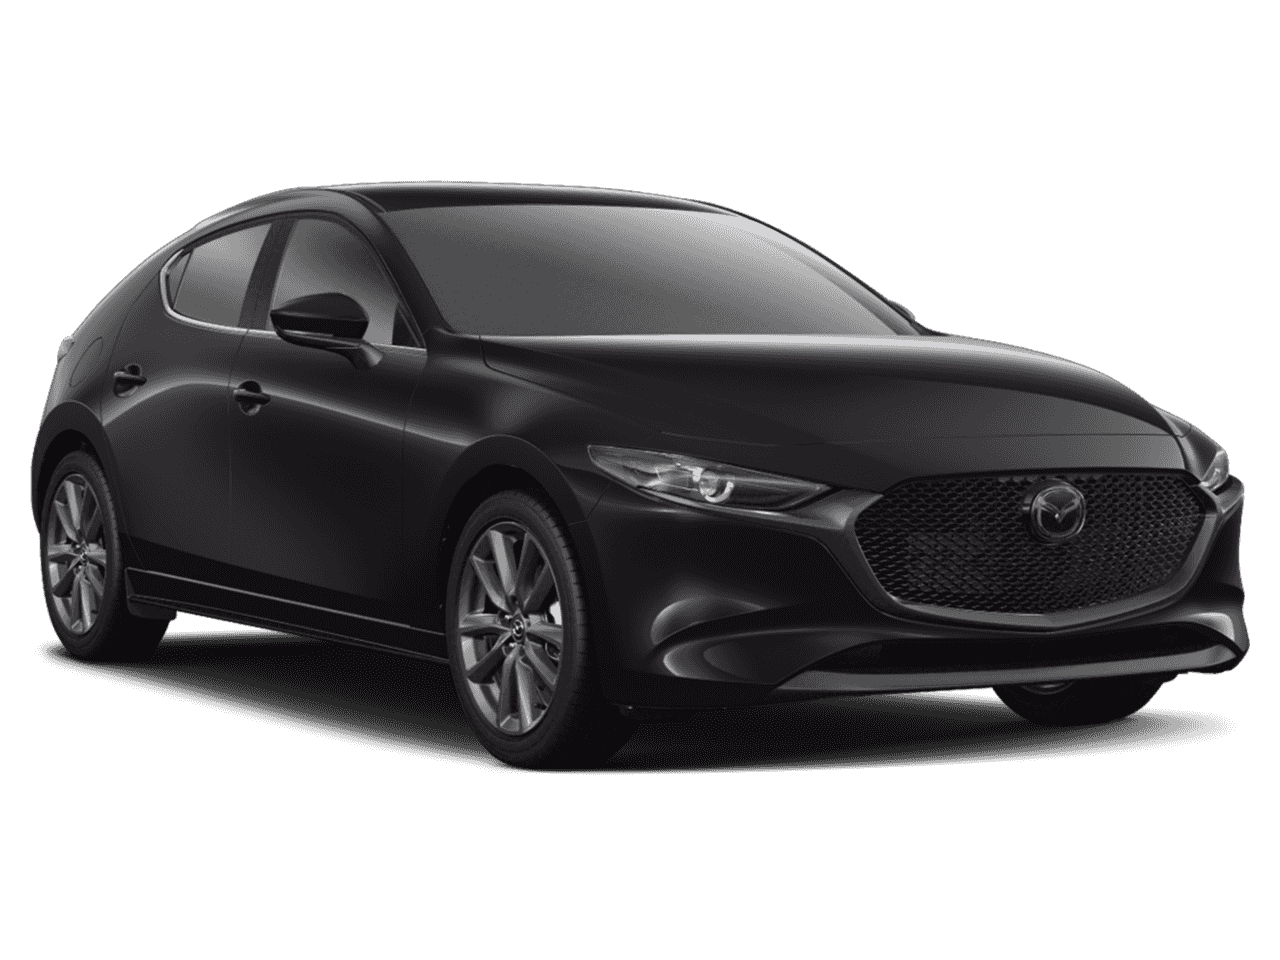 2019 Mazda3 Hatchback Base FWD Hatchback